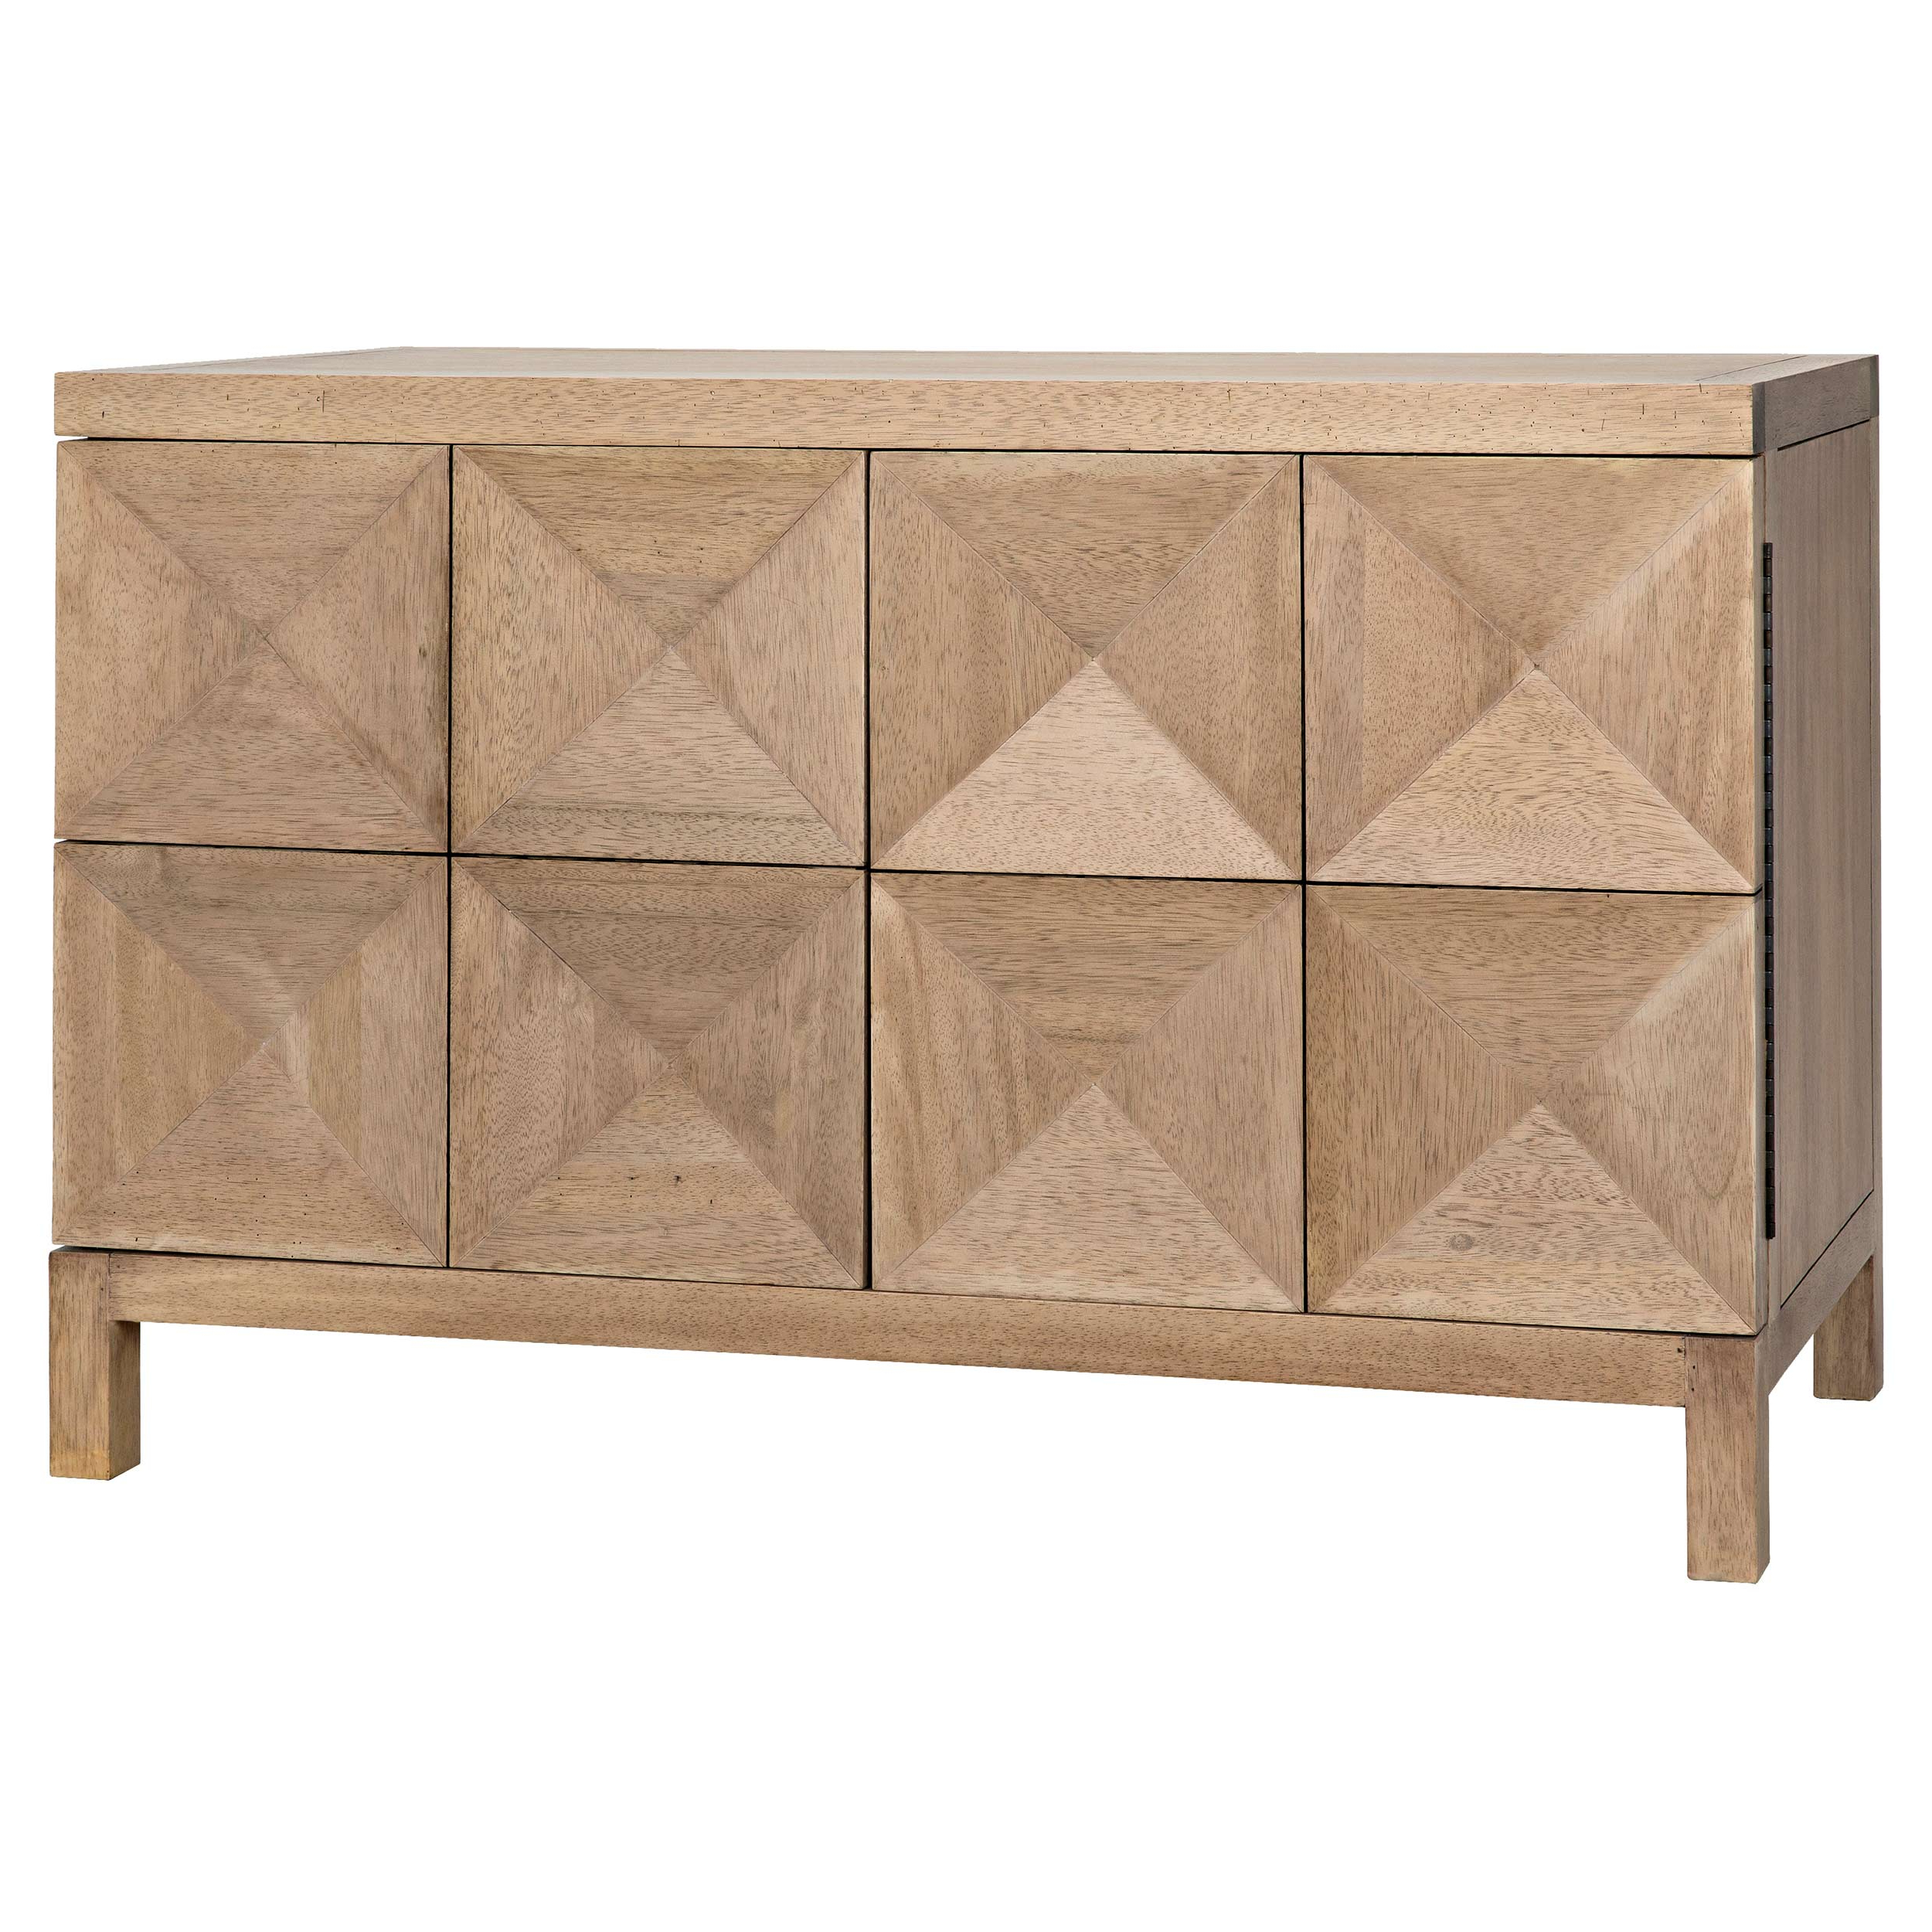 Antique Walnut Finish 2 Door/4 Drawer Sideboards Within Trendy Buffets & Sideboards (View 19 of 20)